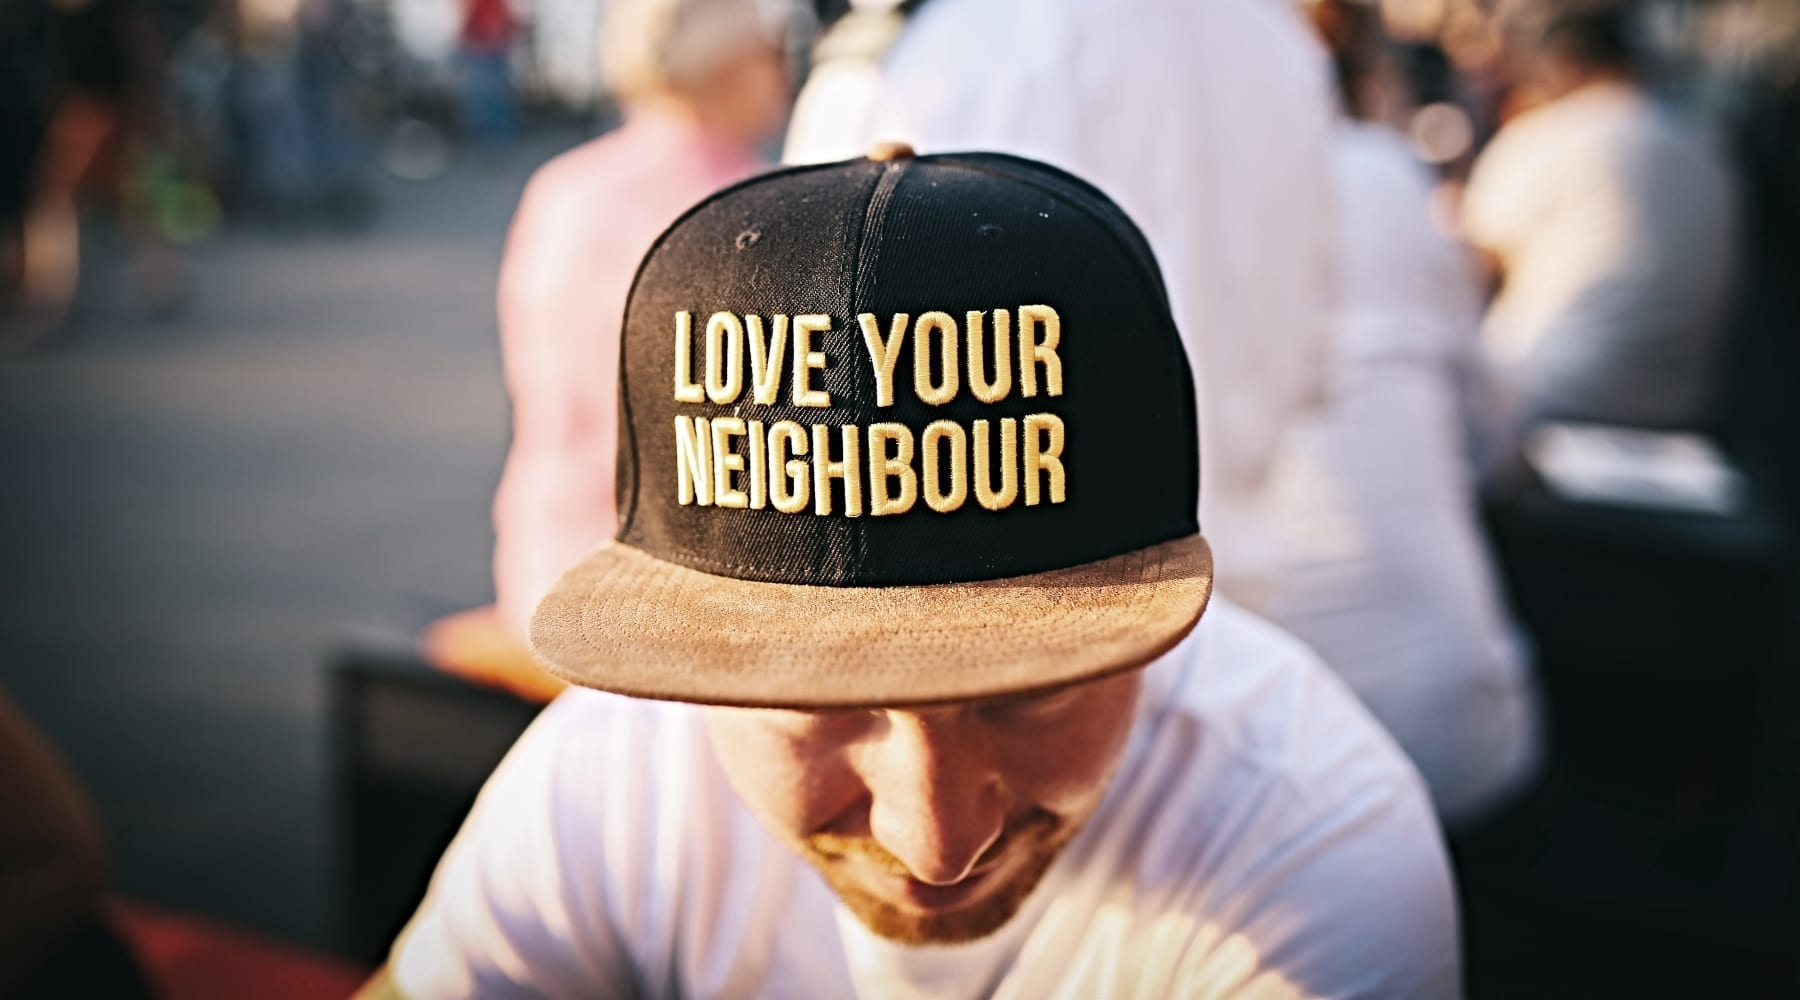 Look Back | More to Loving Neighbors Than Being Neighborly